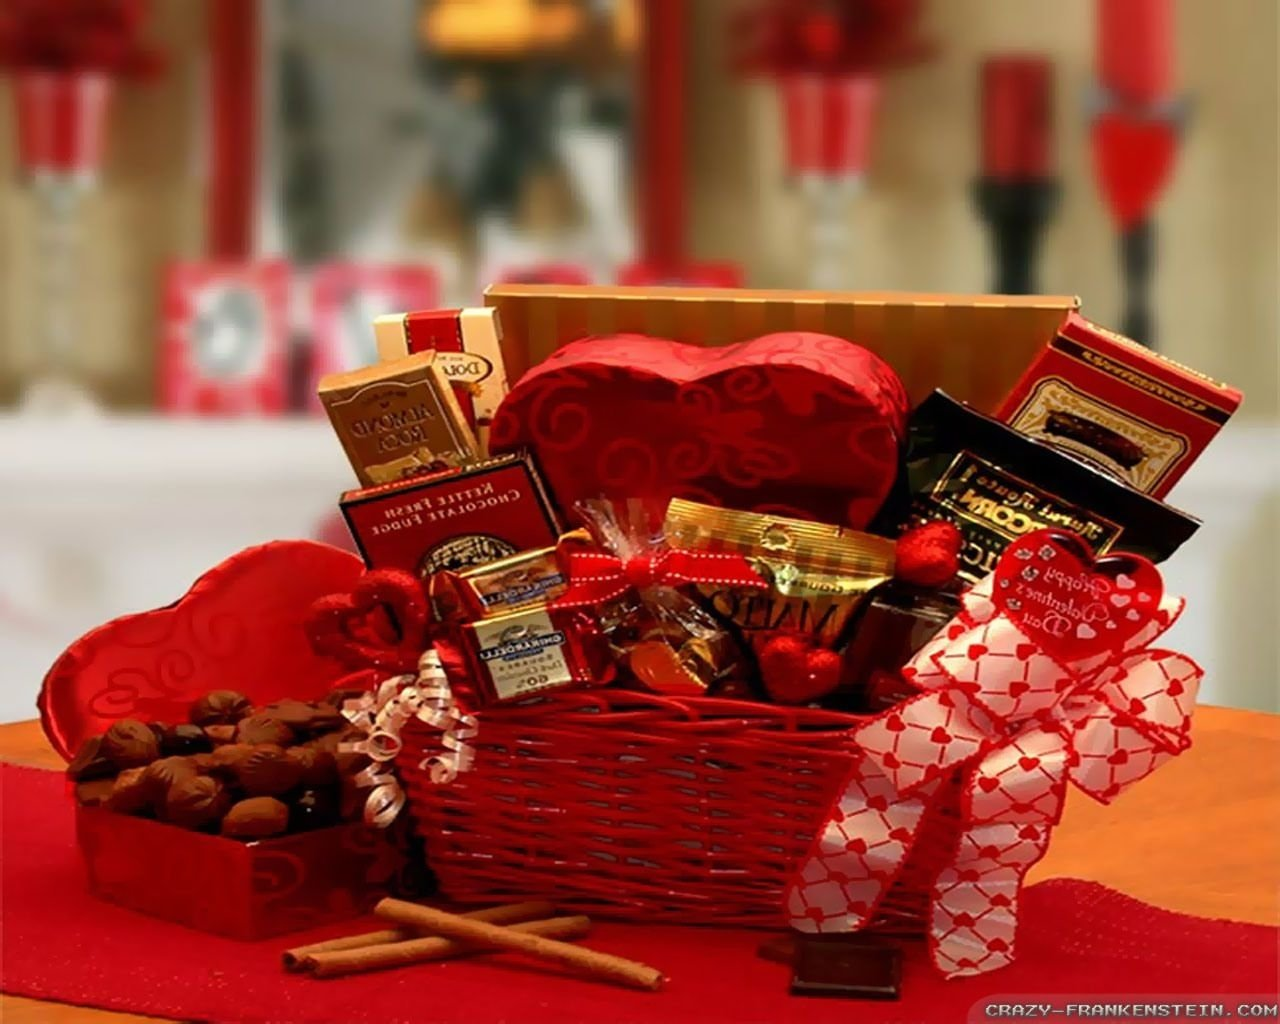 10 Spectacular Valentine Date Ideas For Her valentines ideas for boyfriend on a budget valentines day gifts 4 2021